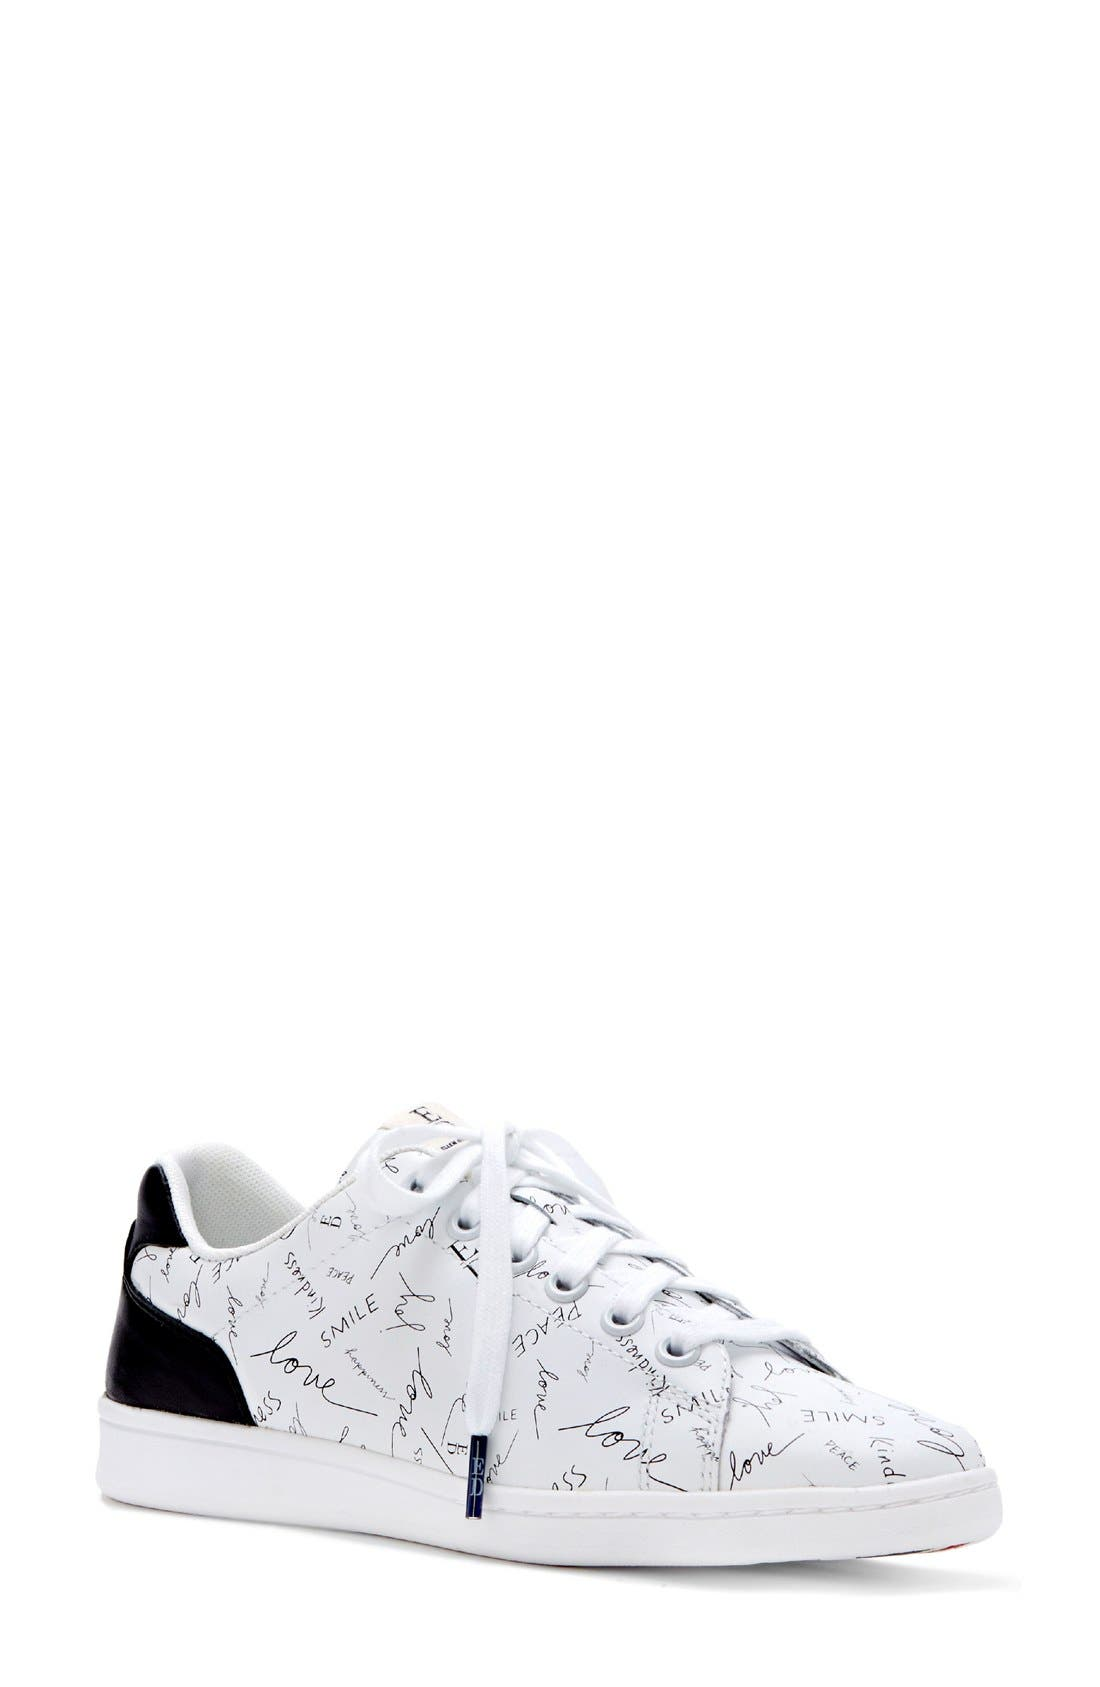 Alternate Image 1 Selected - ED Ellen DeGeneres Chaprint Sneaker (Women)